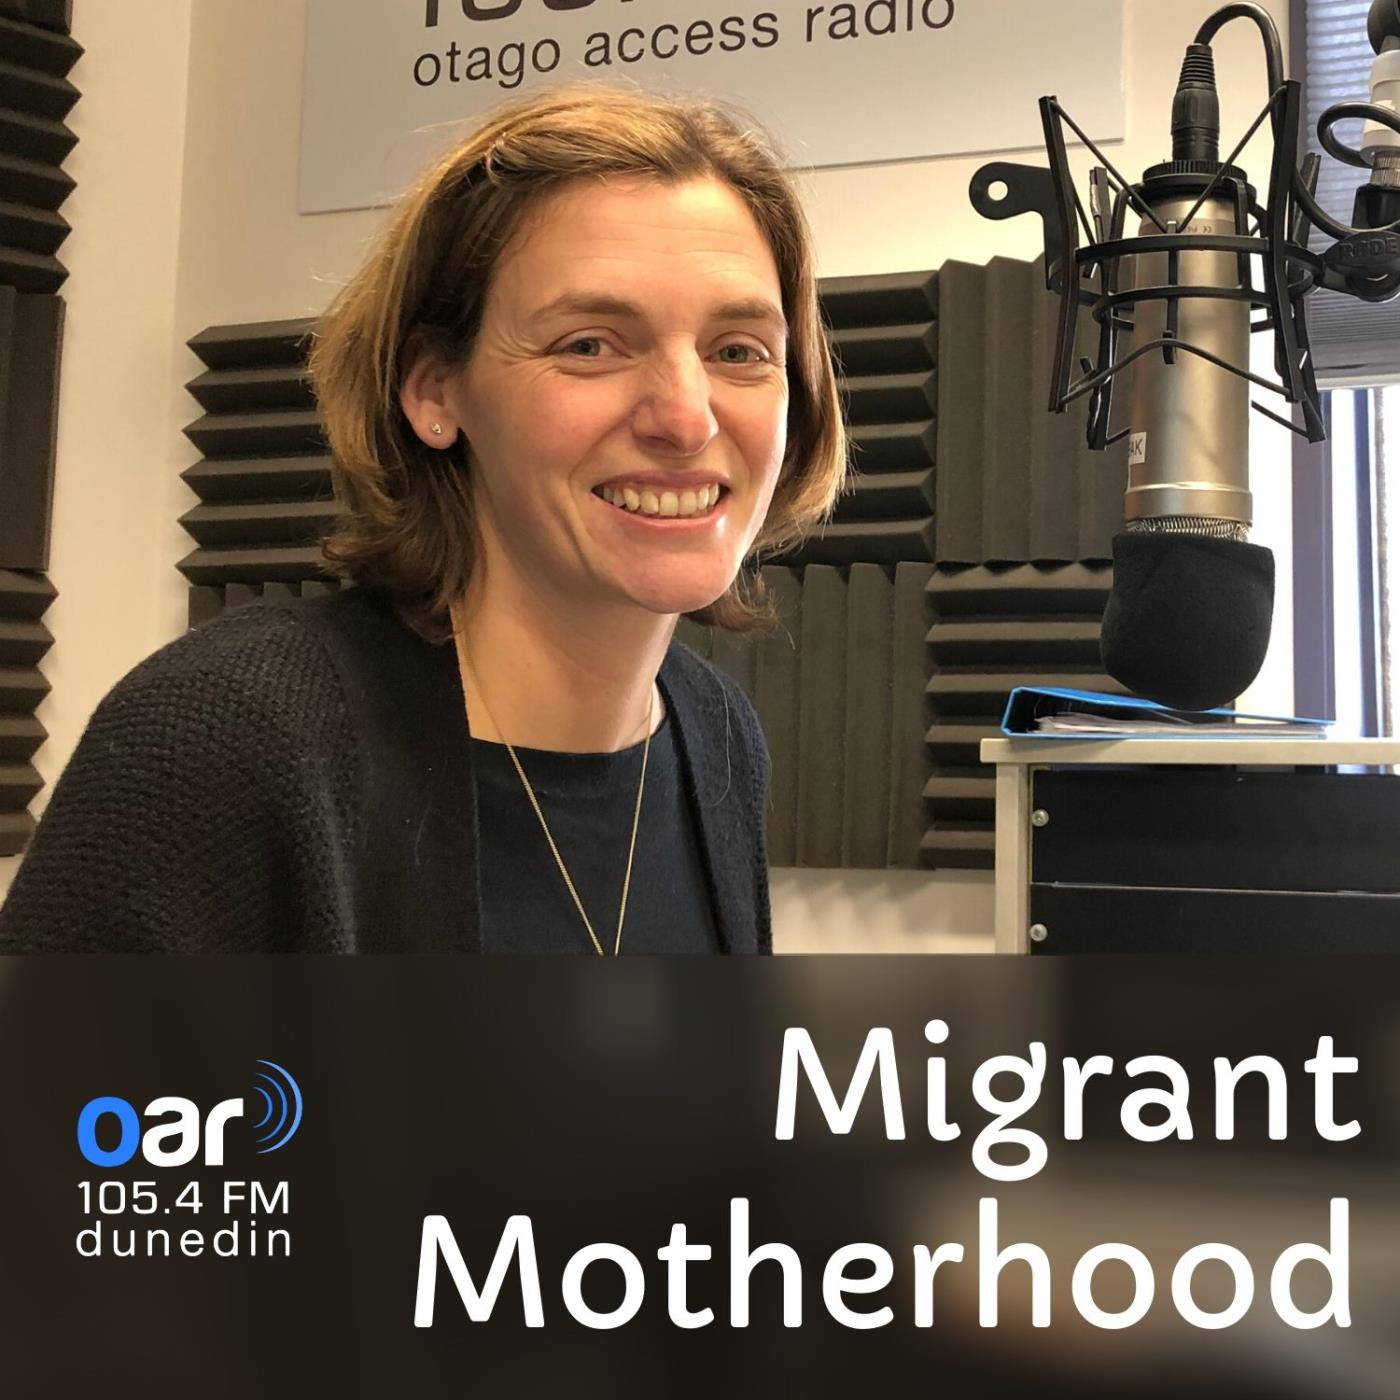 Migrant Motherhood